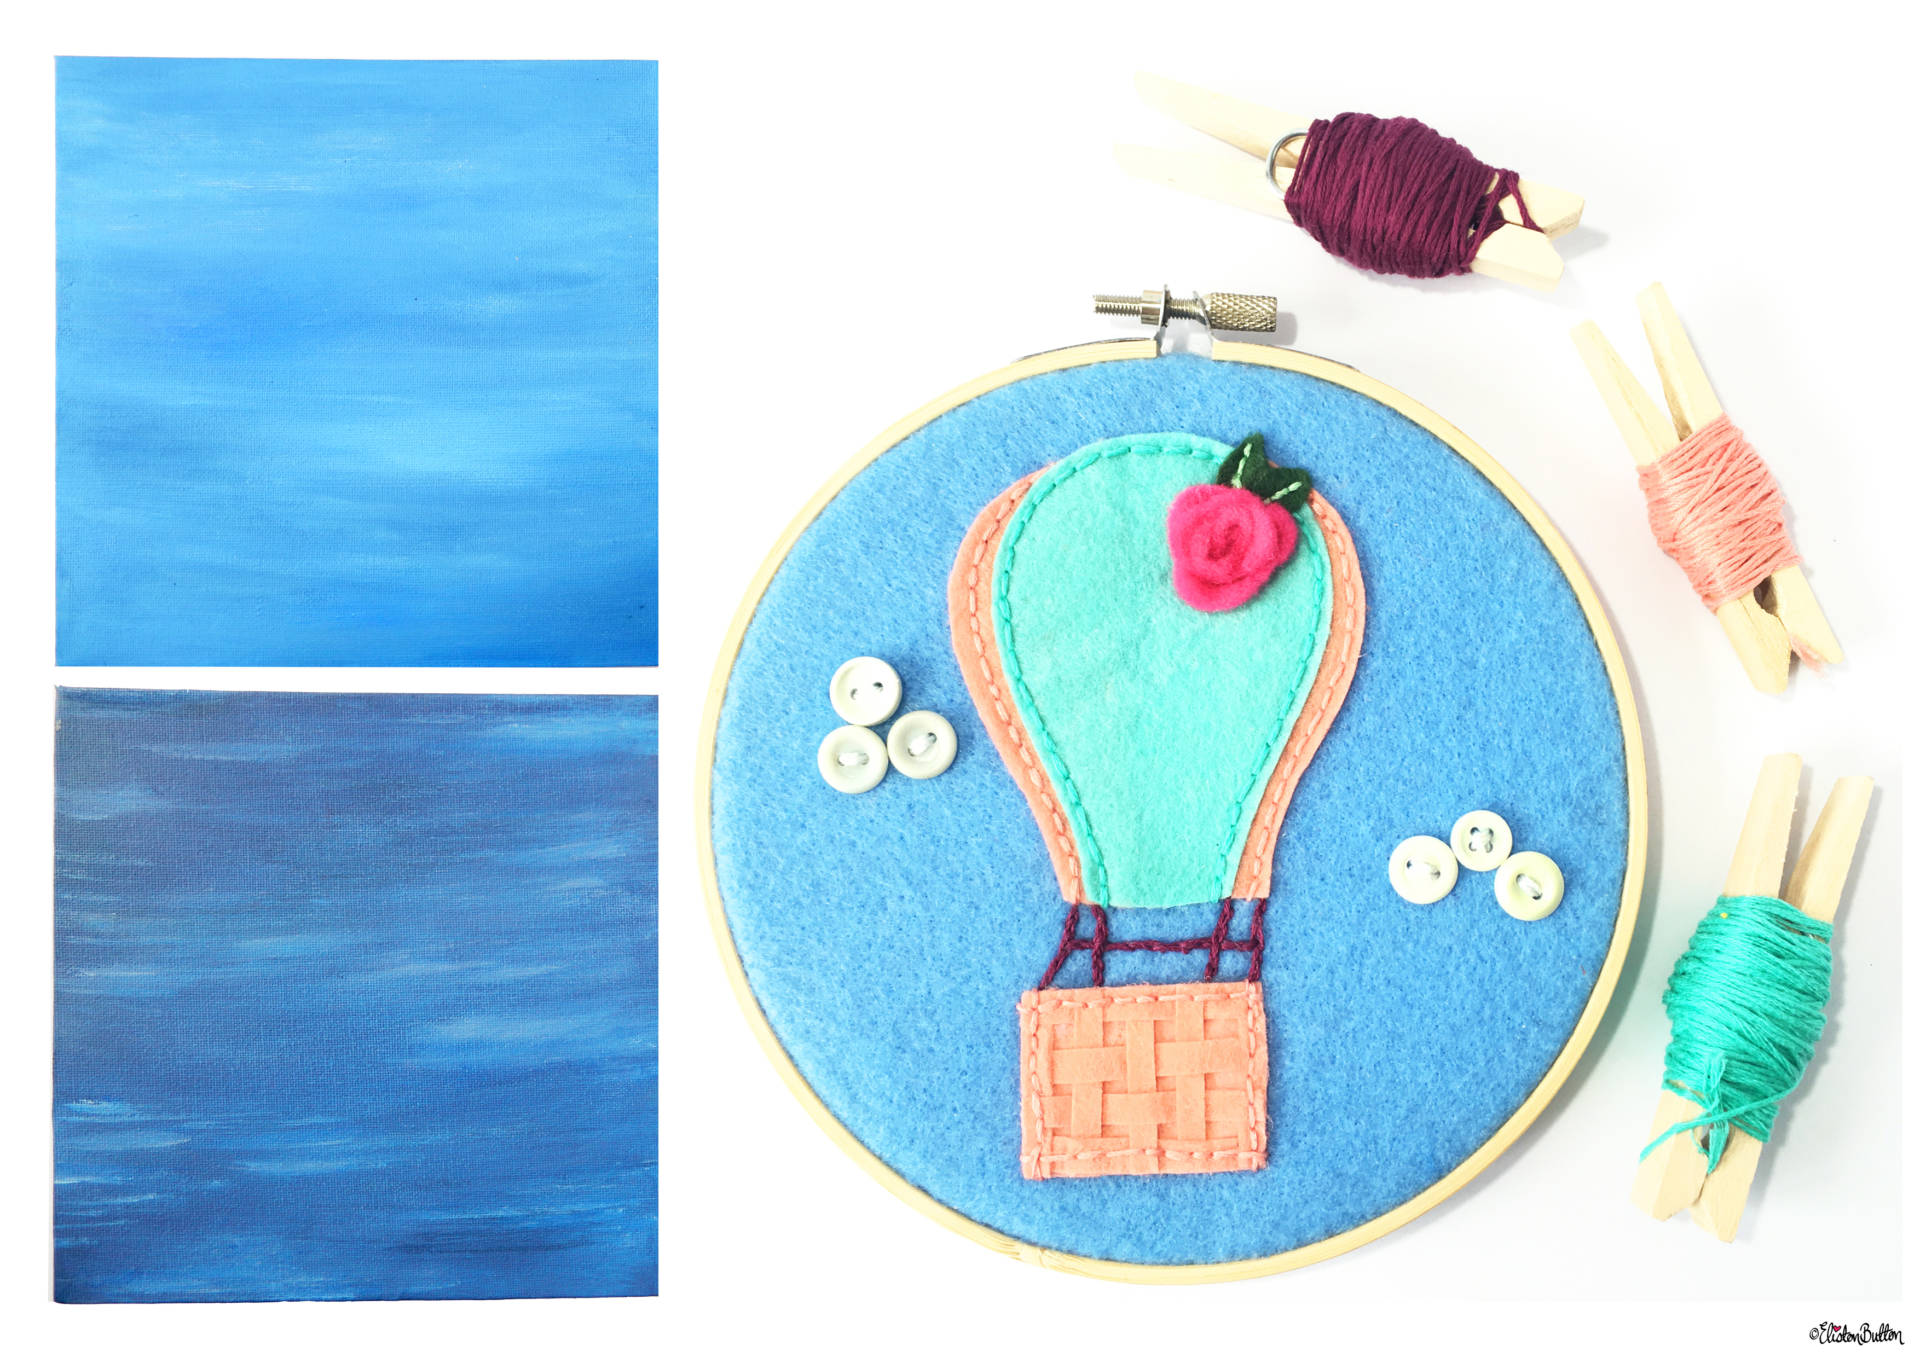 Sea and Sky Painted Canvases and Hot Air Balloon Embroidery Hoop by Eliston Button - Christmas Gift Guide, Last Postage Dates and a Present for You! at www.elistonbutton.com - Eliston Button - That Crafty Kid – Art, Design, Craft & Adventure.